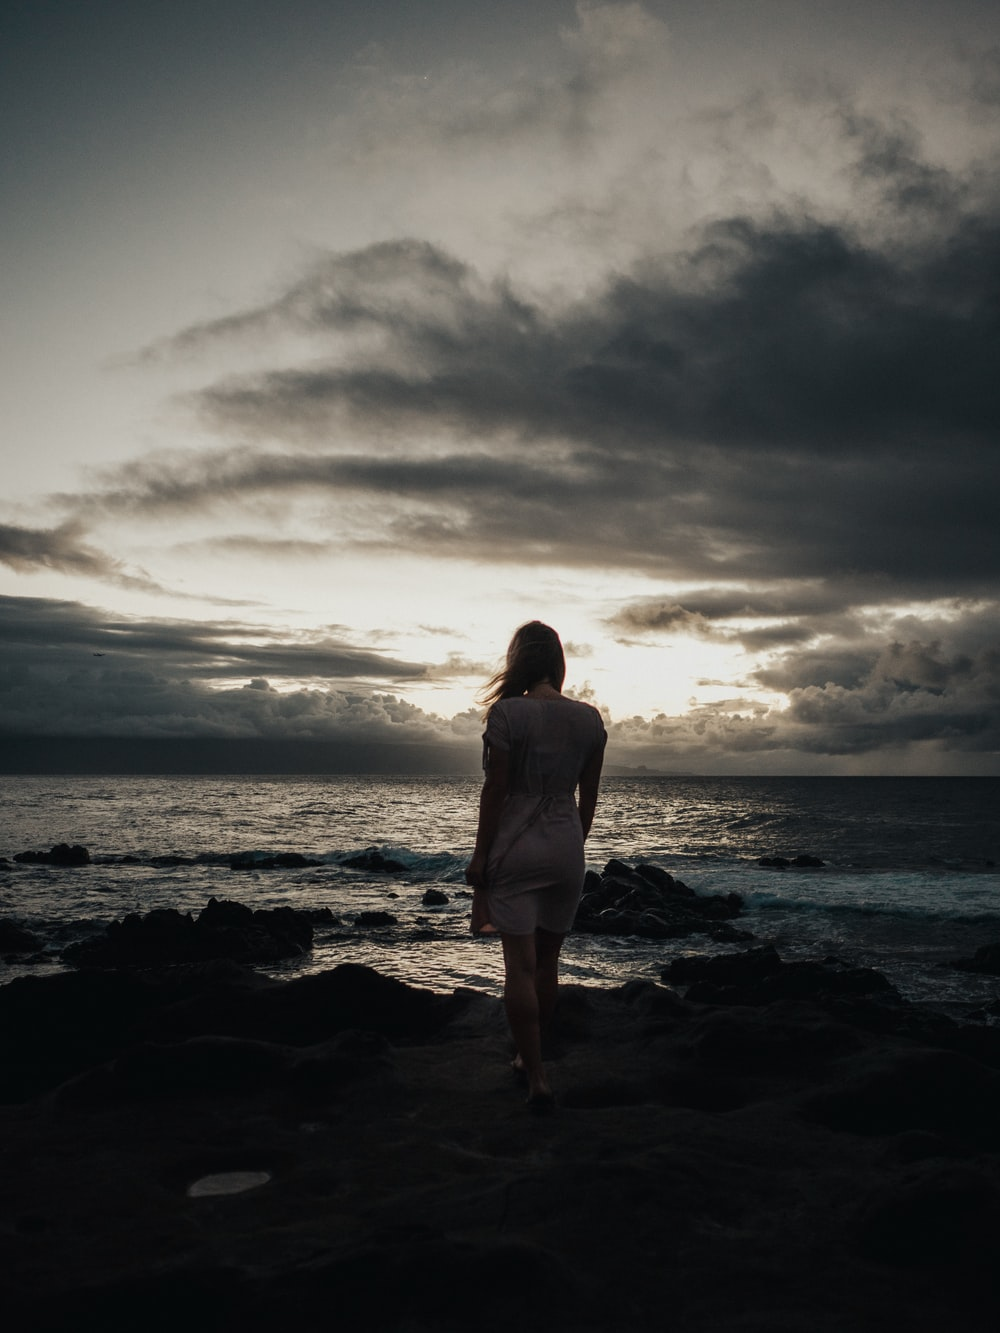 silhouette photography of woman standing near sea waves